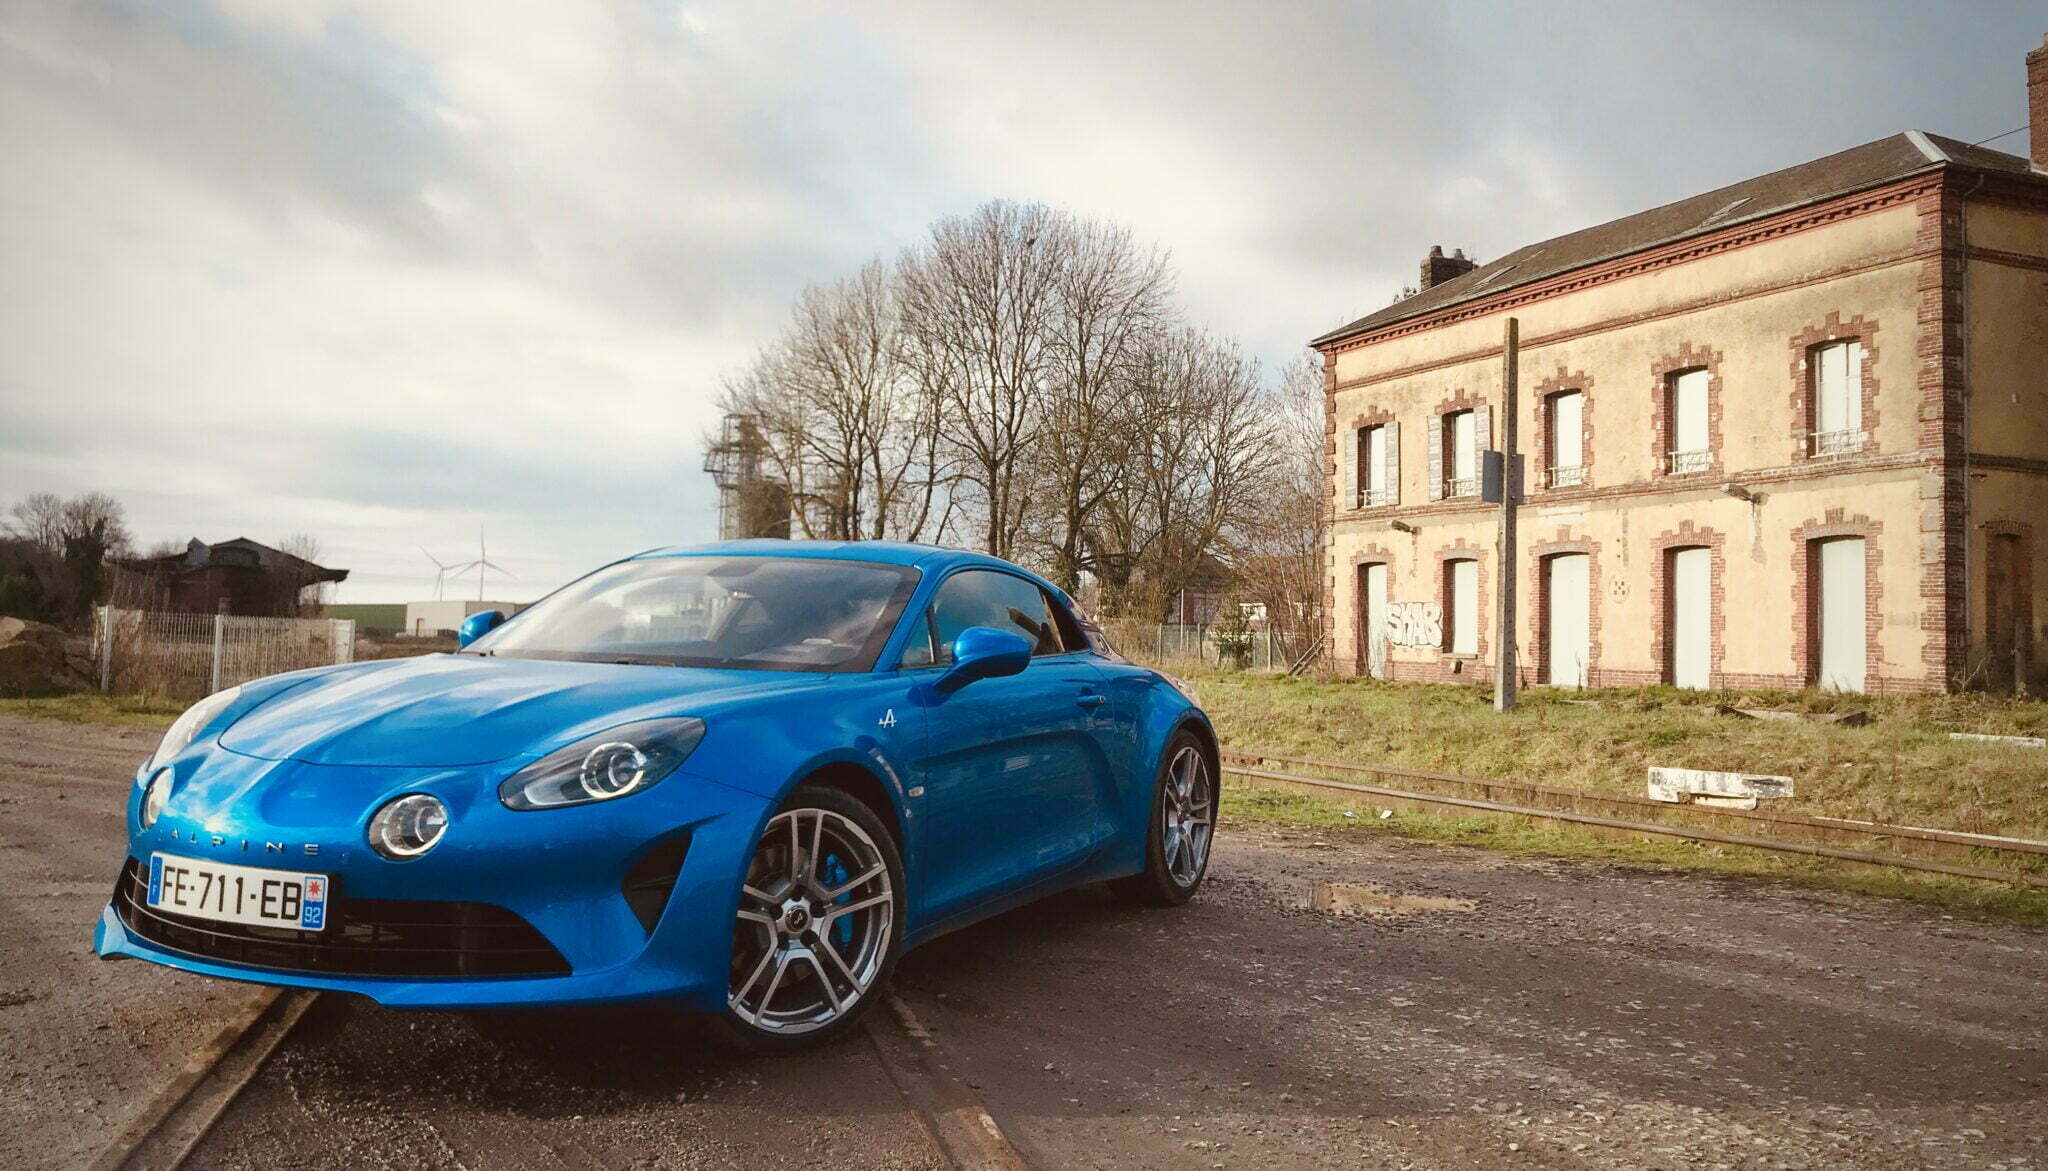 BF8B423D 4326 4E07 8192 4595A6BA7DCF | A l'essai : Alpine A110, des sensations Pures.